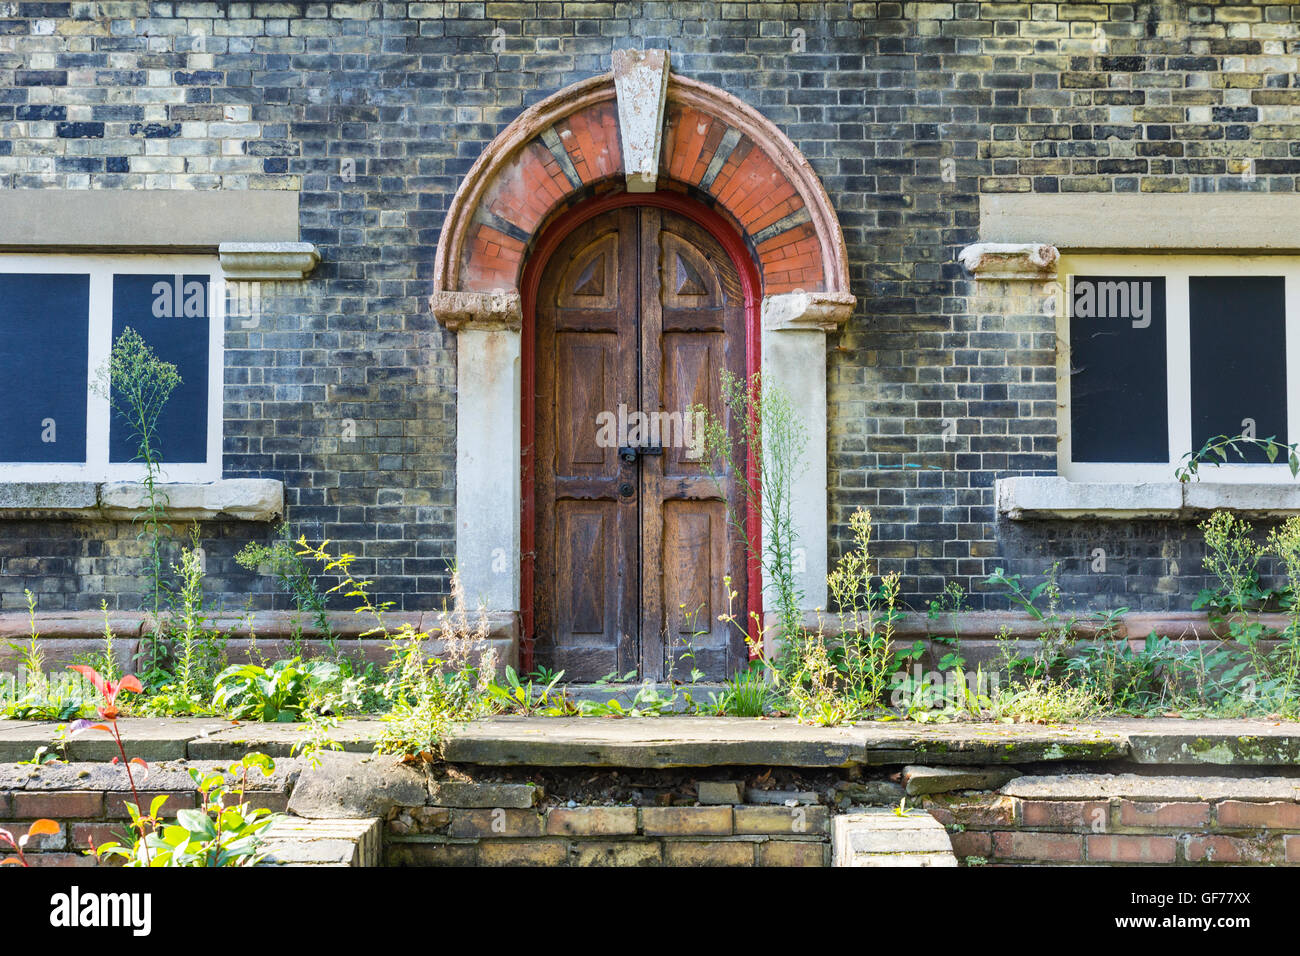 Derelict building, Abbey Mills Pumping Station, London, England, United Kingdom - Stock Image